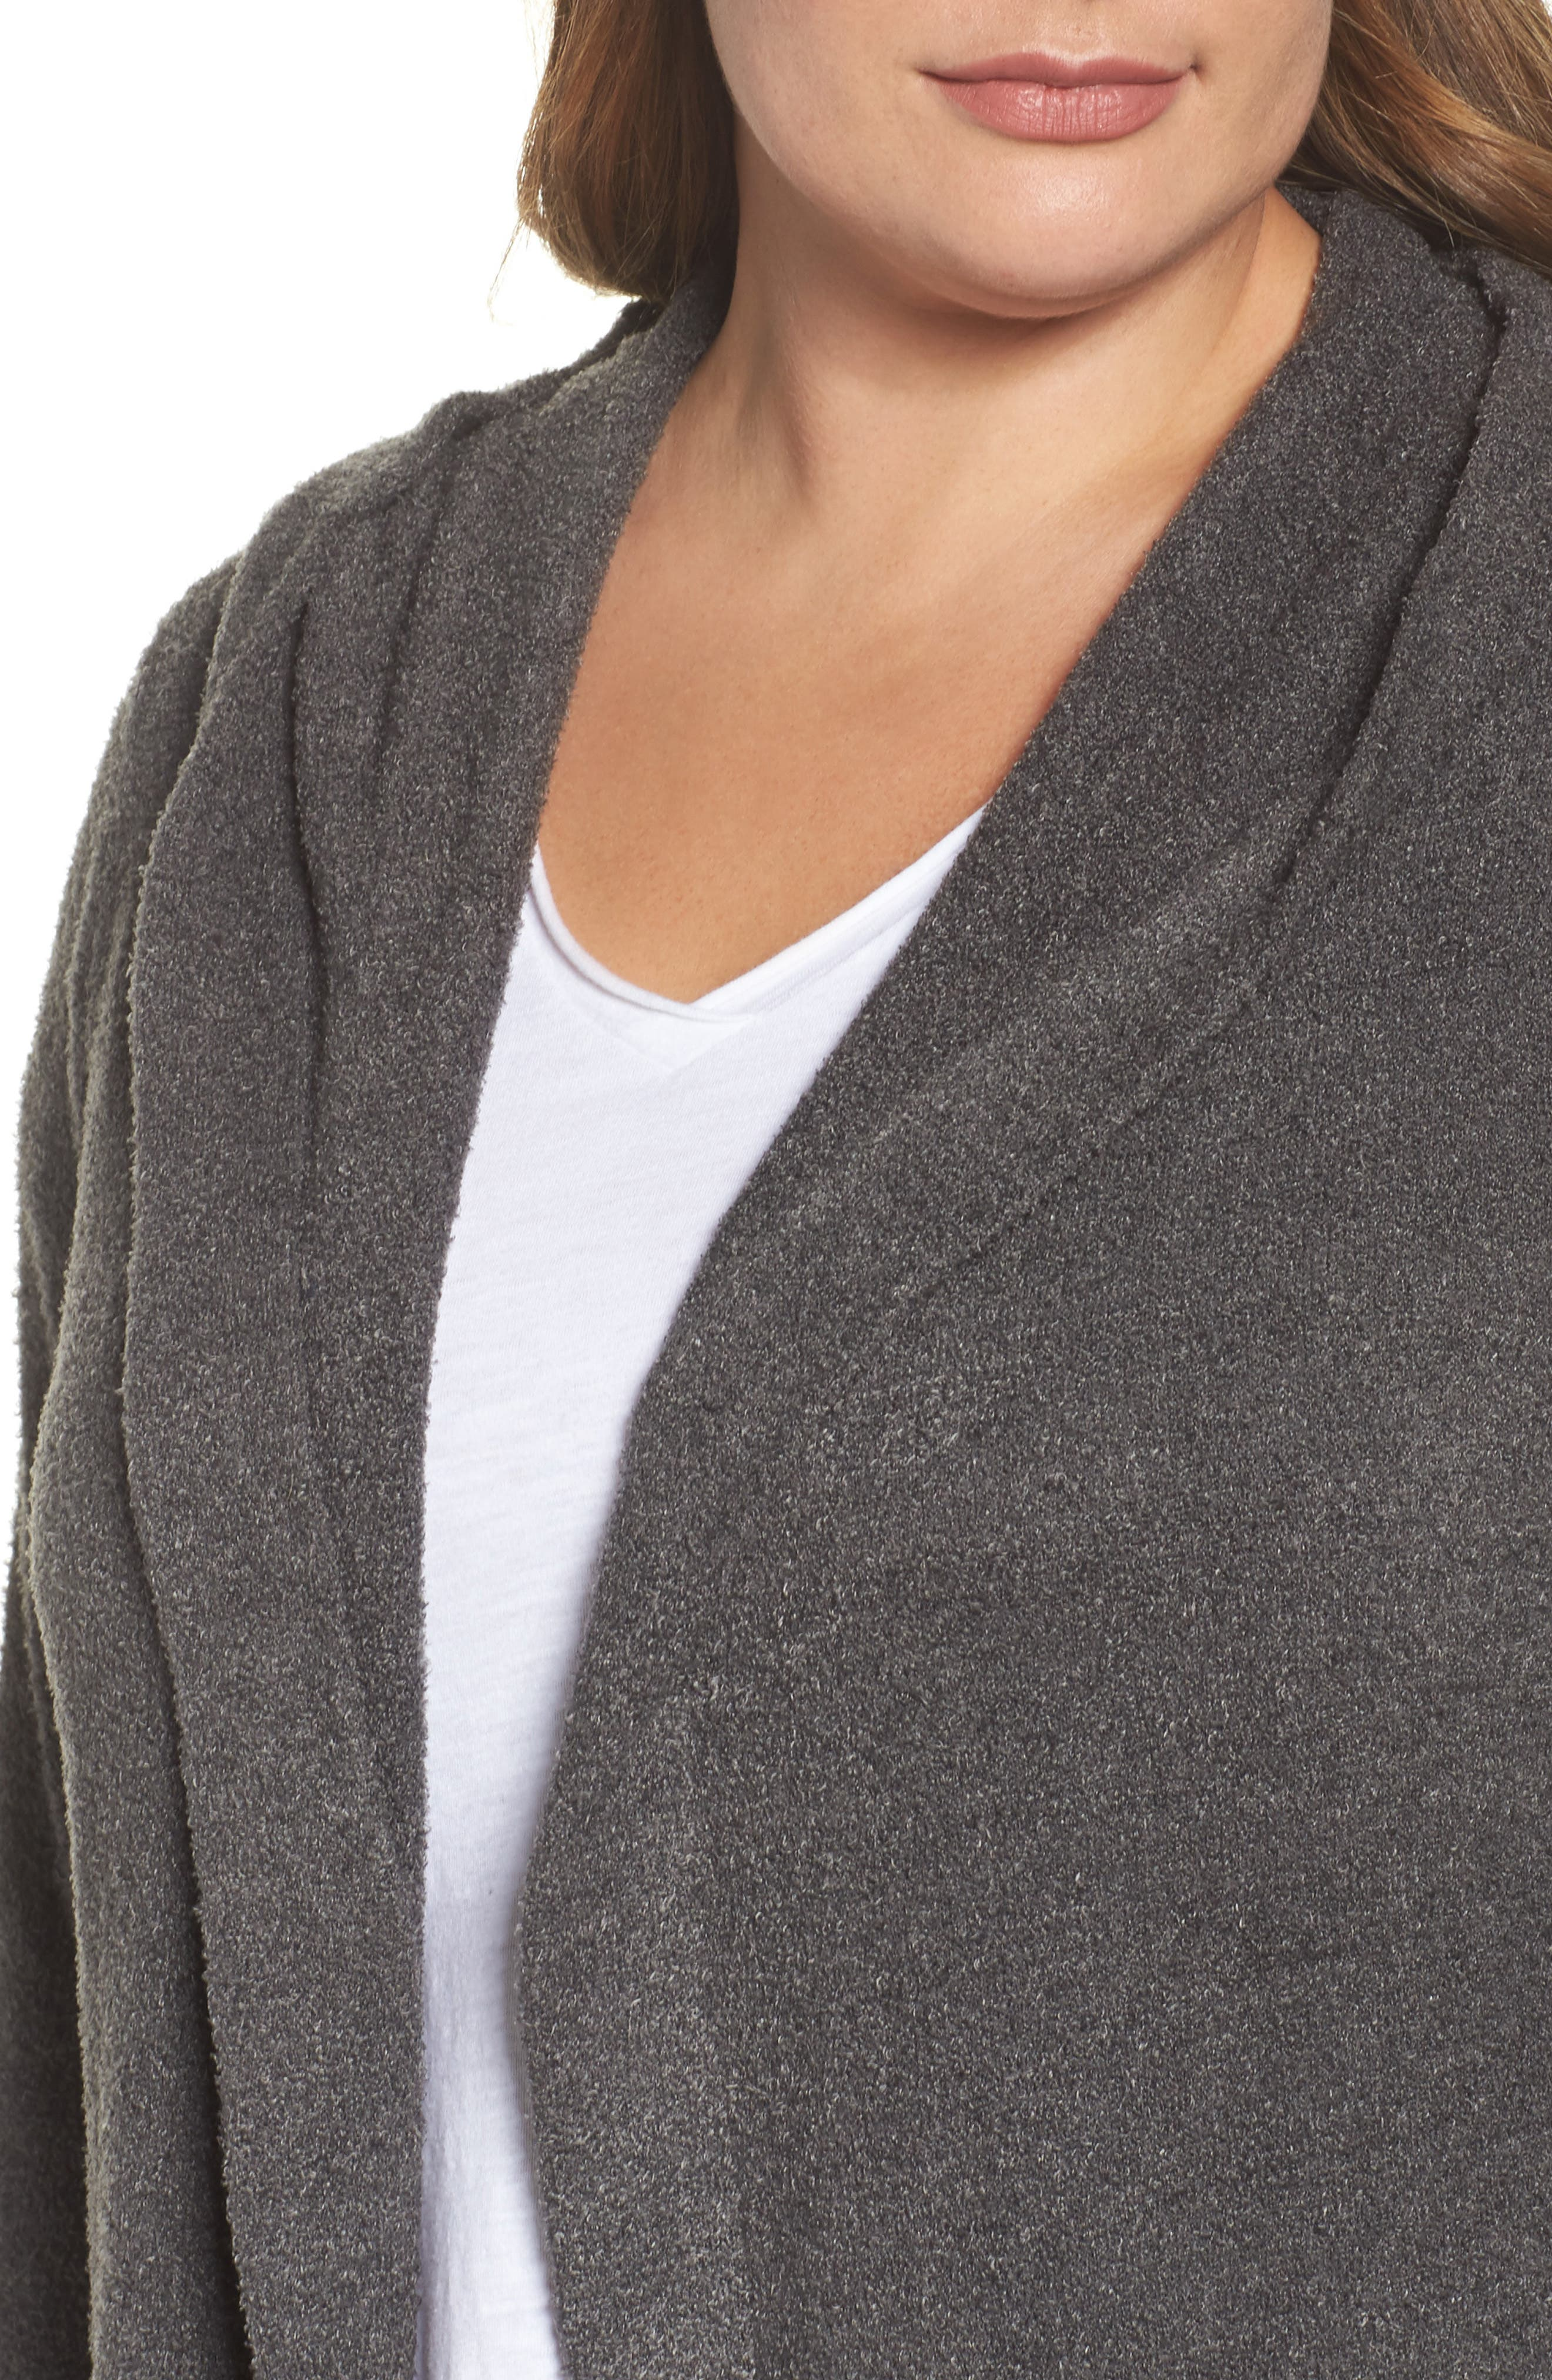 Cozychic Lite<sup>®</sup> Coastal Hooded Cardigan,                             Alternate thumbnail 4, color,                             CARBON